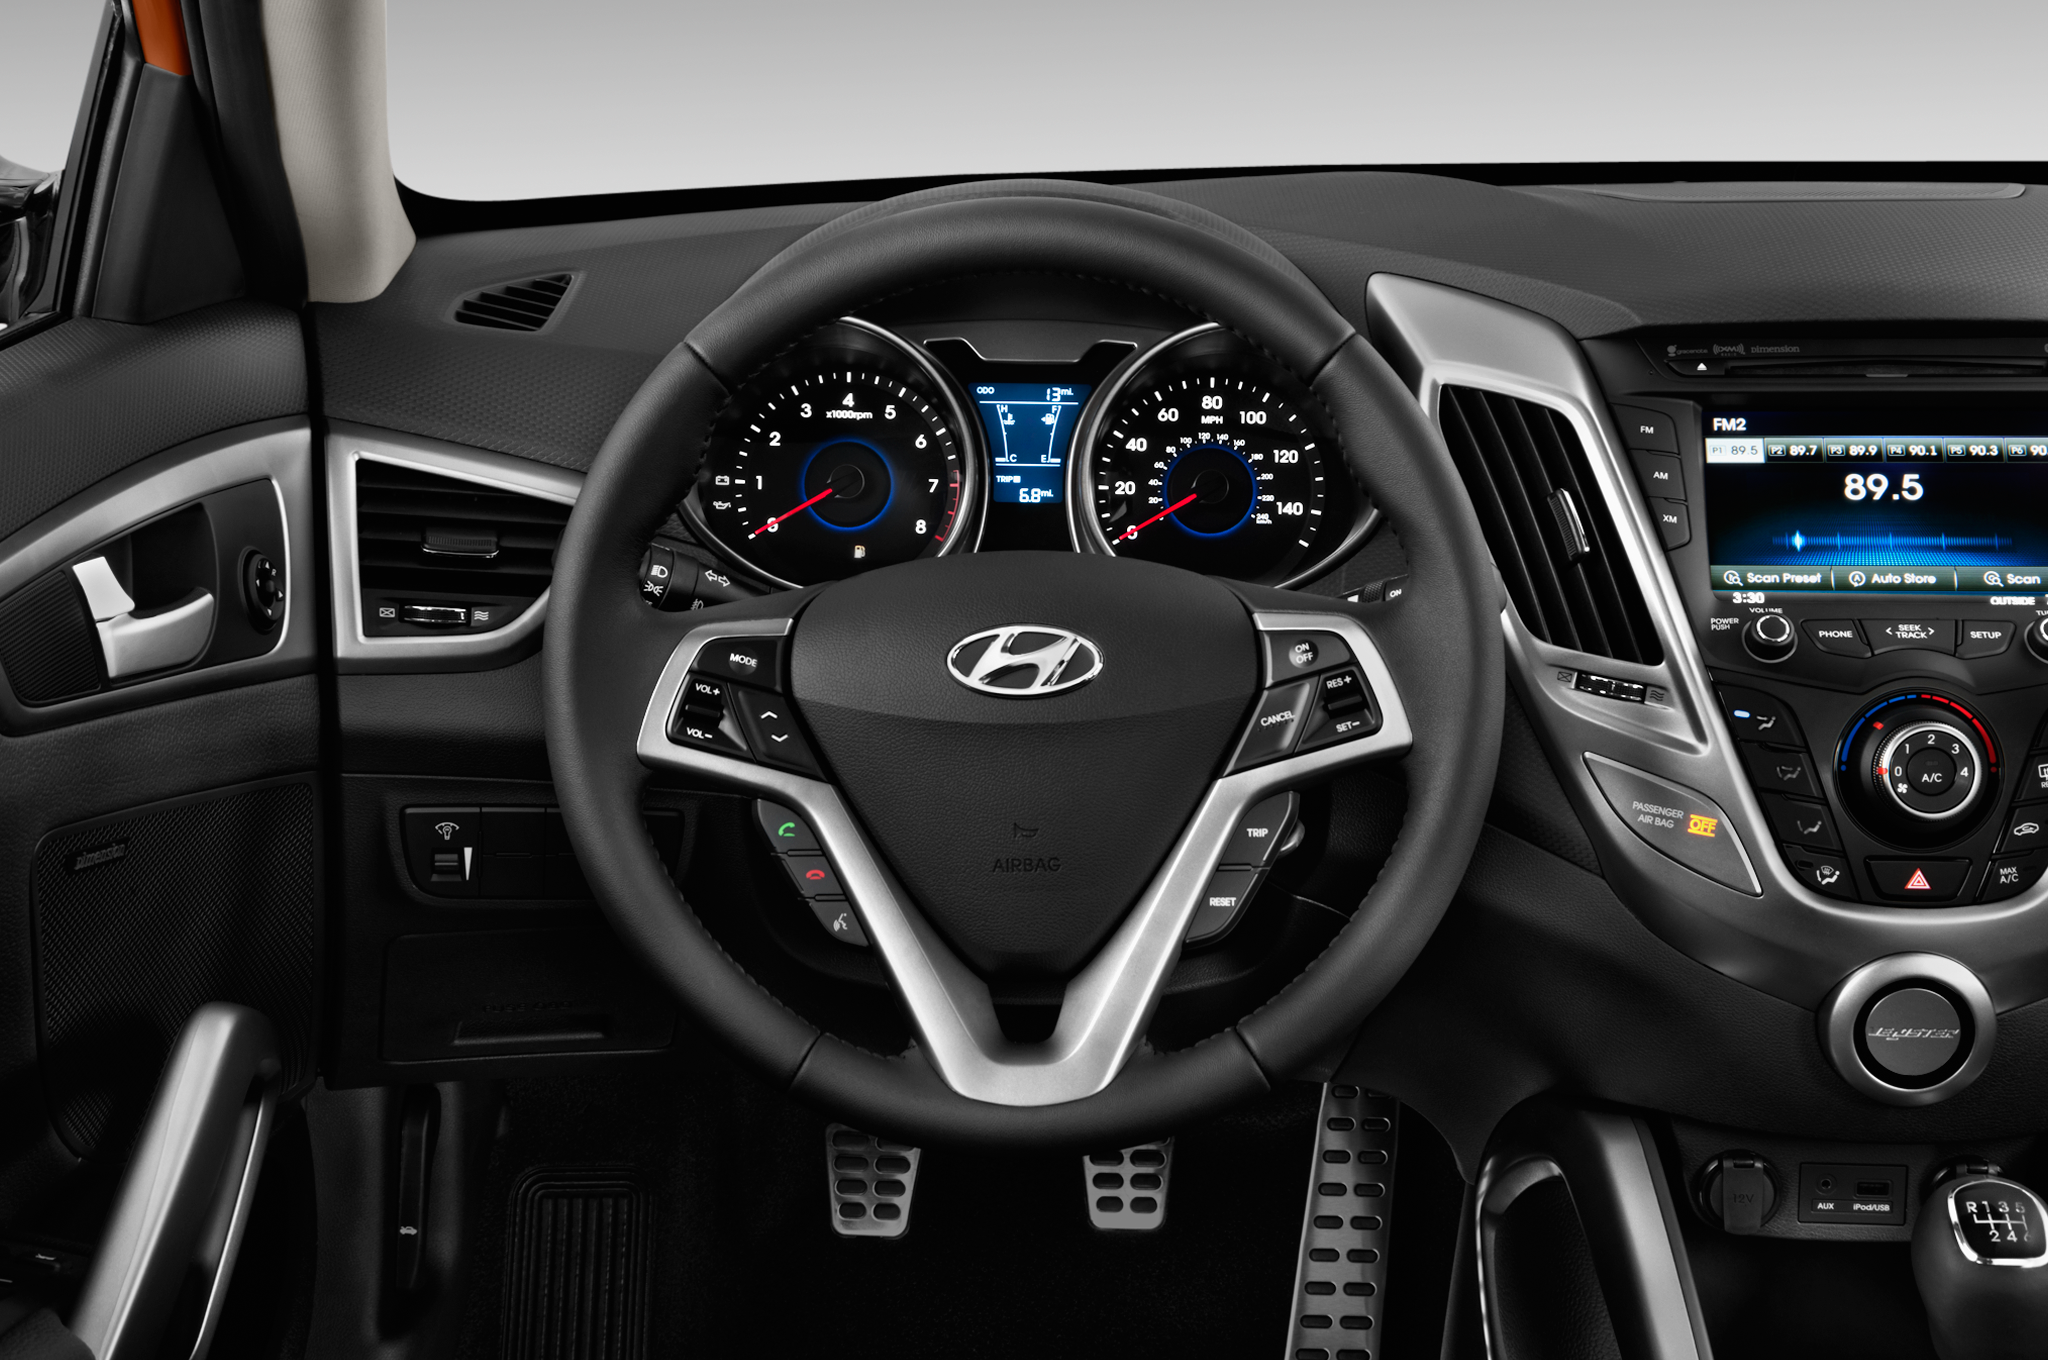 exotic car turbo veloster images hyundai wallpaper of widescreen